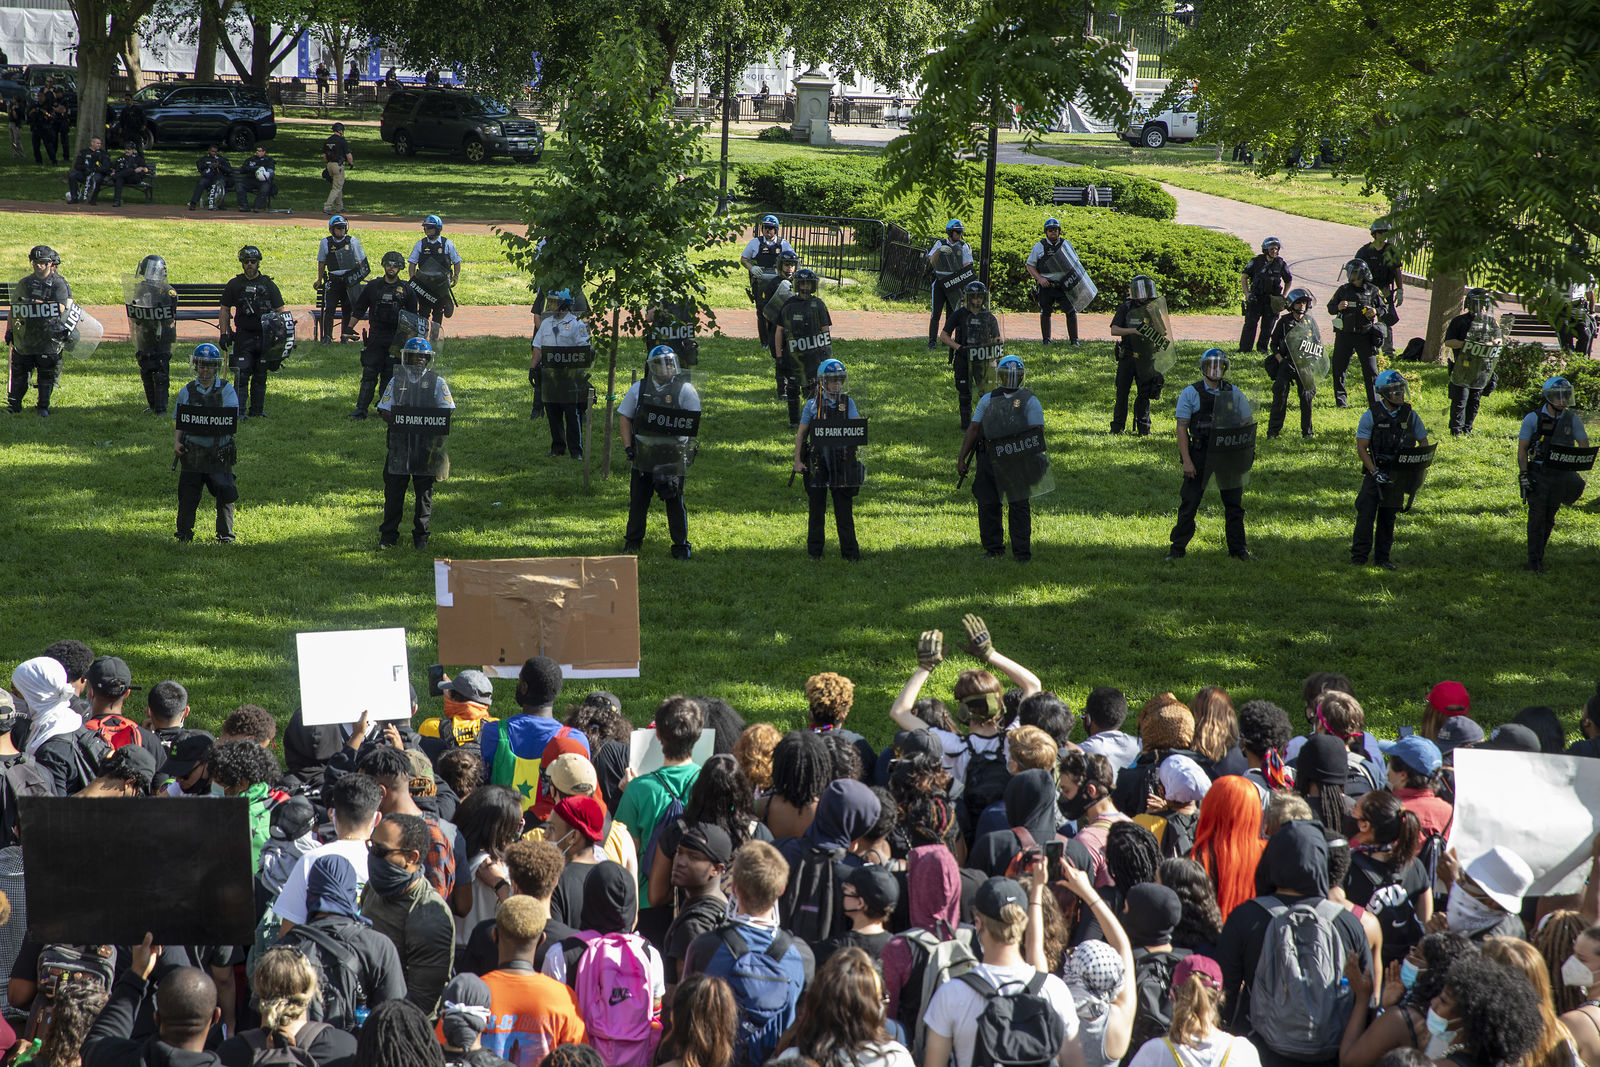 Protesters gather at Lafayette Square Park outside the White House on May 31, 2020 in Washington, DC. (Photo by Tasos Katopodis/Getty Images)